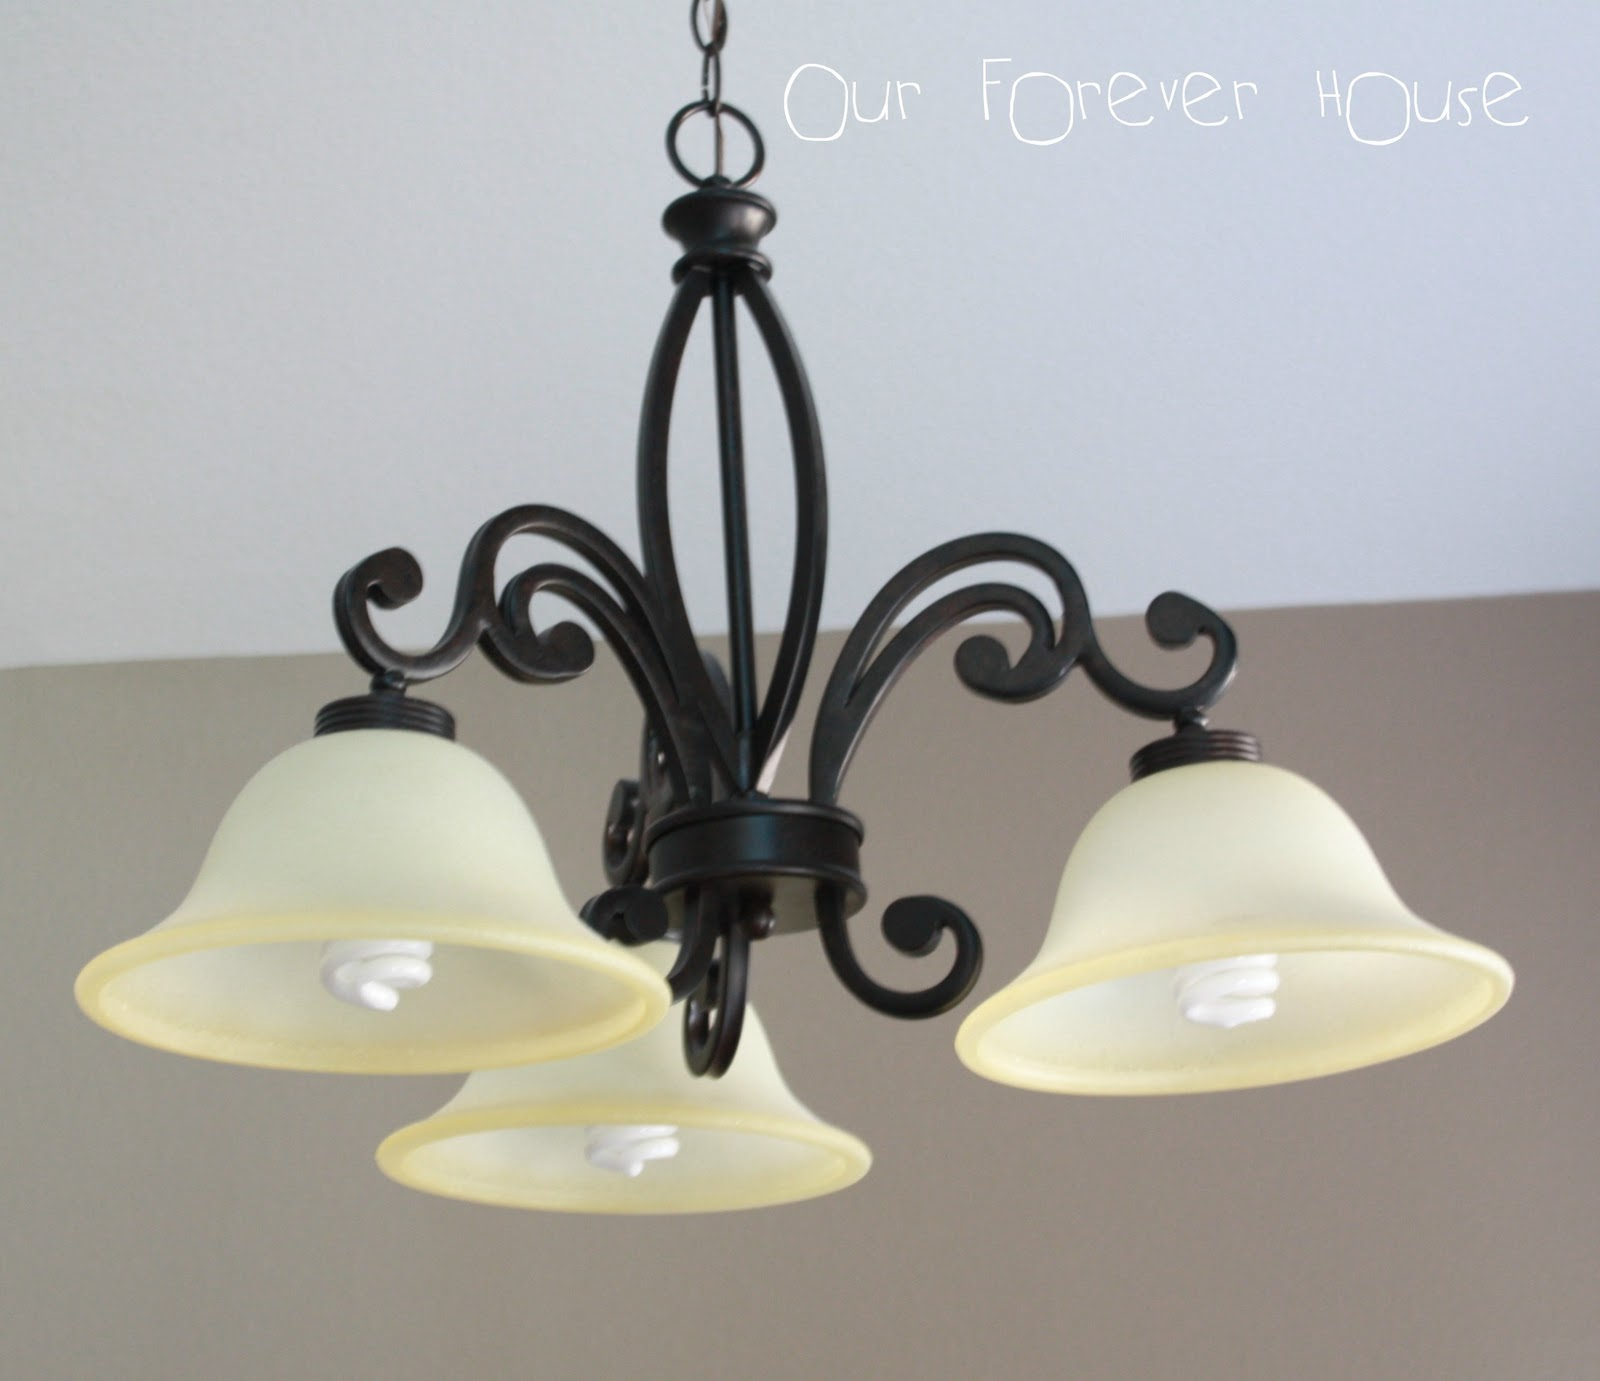 Bronze Kitchen Lighting Over a Table